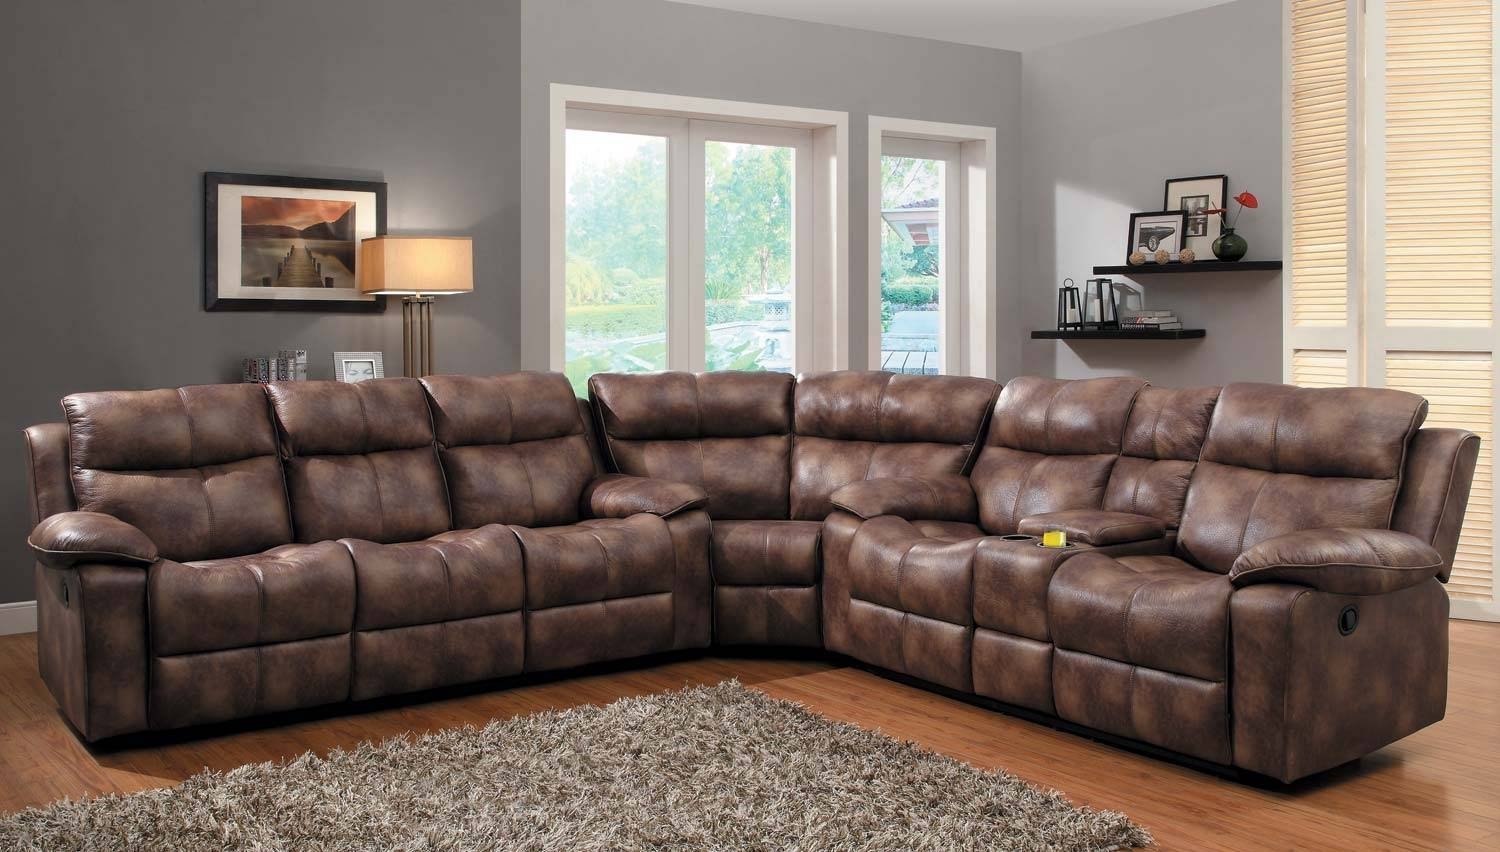 Microfiber Sectional Sofa Black Leather With Cream Cuhsion In Half Moon Sofas Photo